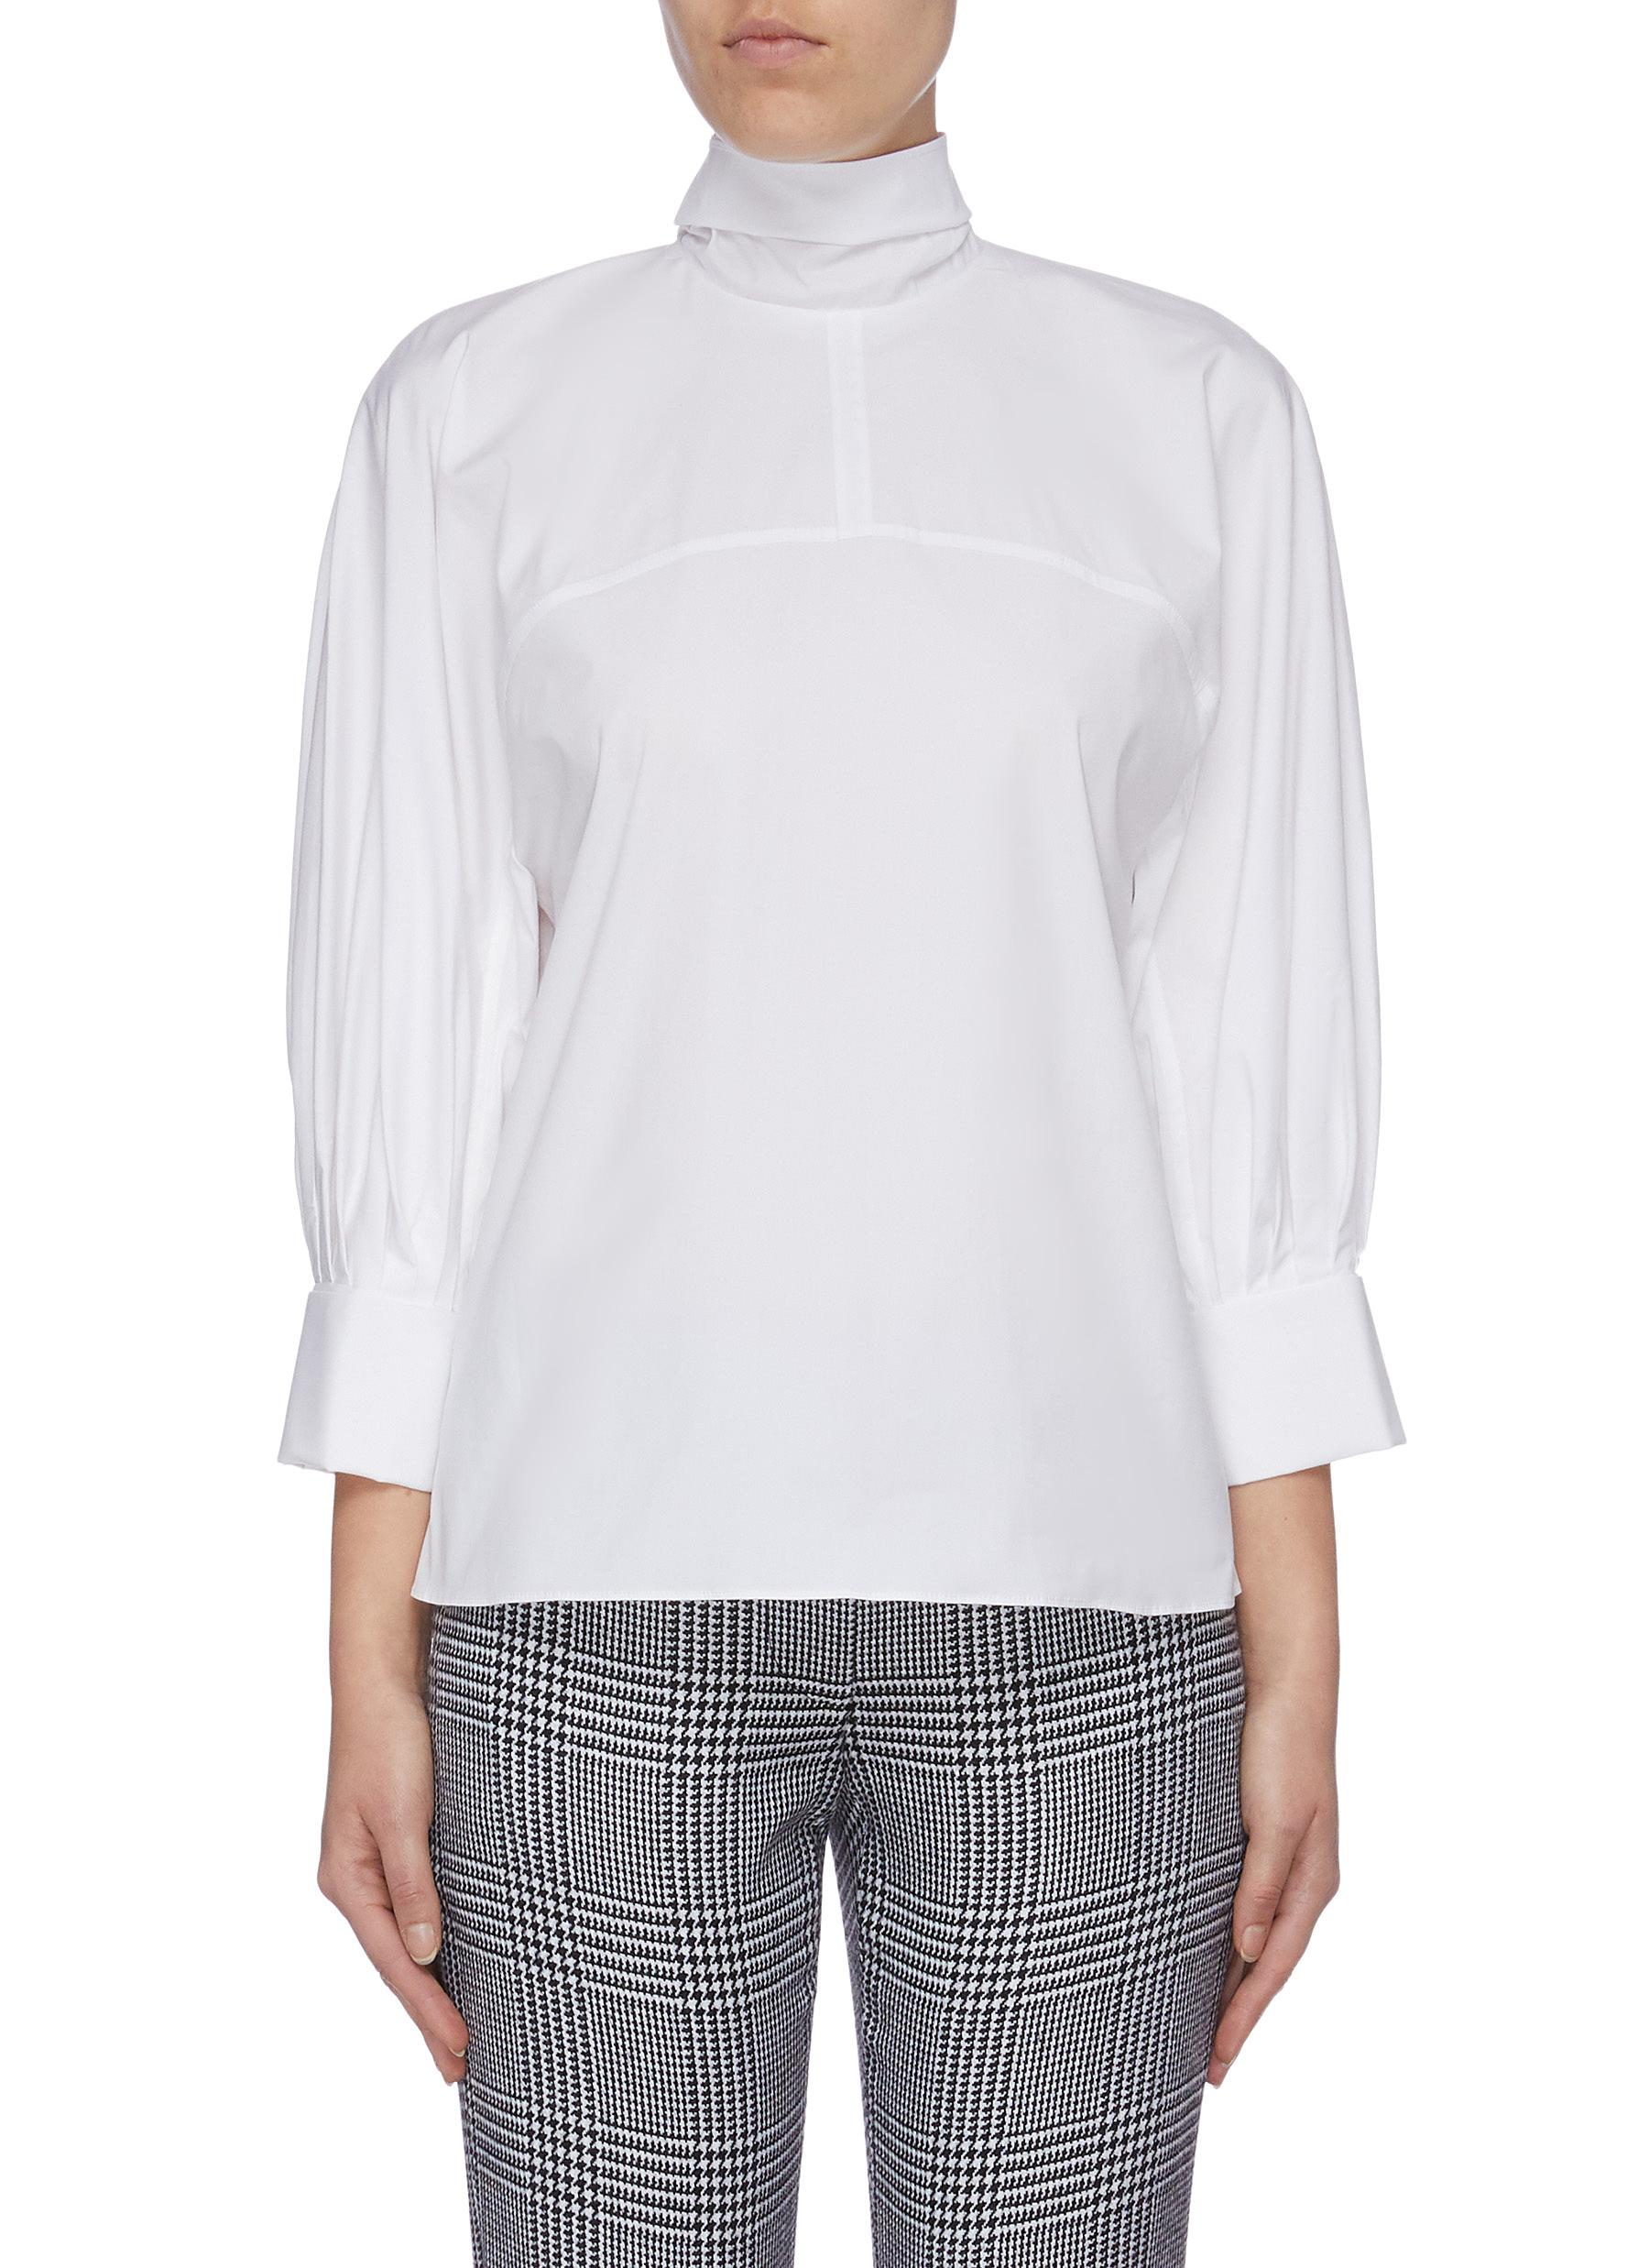 Sash tie neck balloon sleeve blouse by Oscar De La Renta